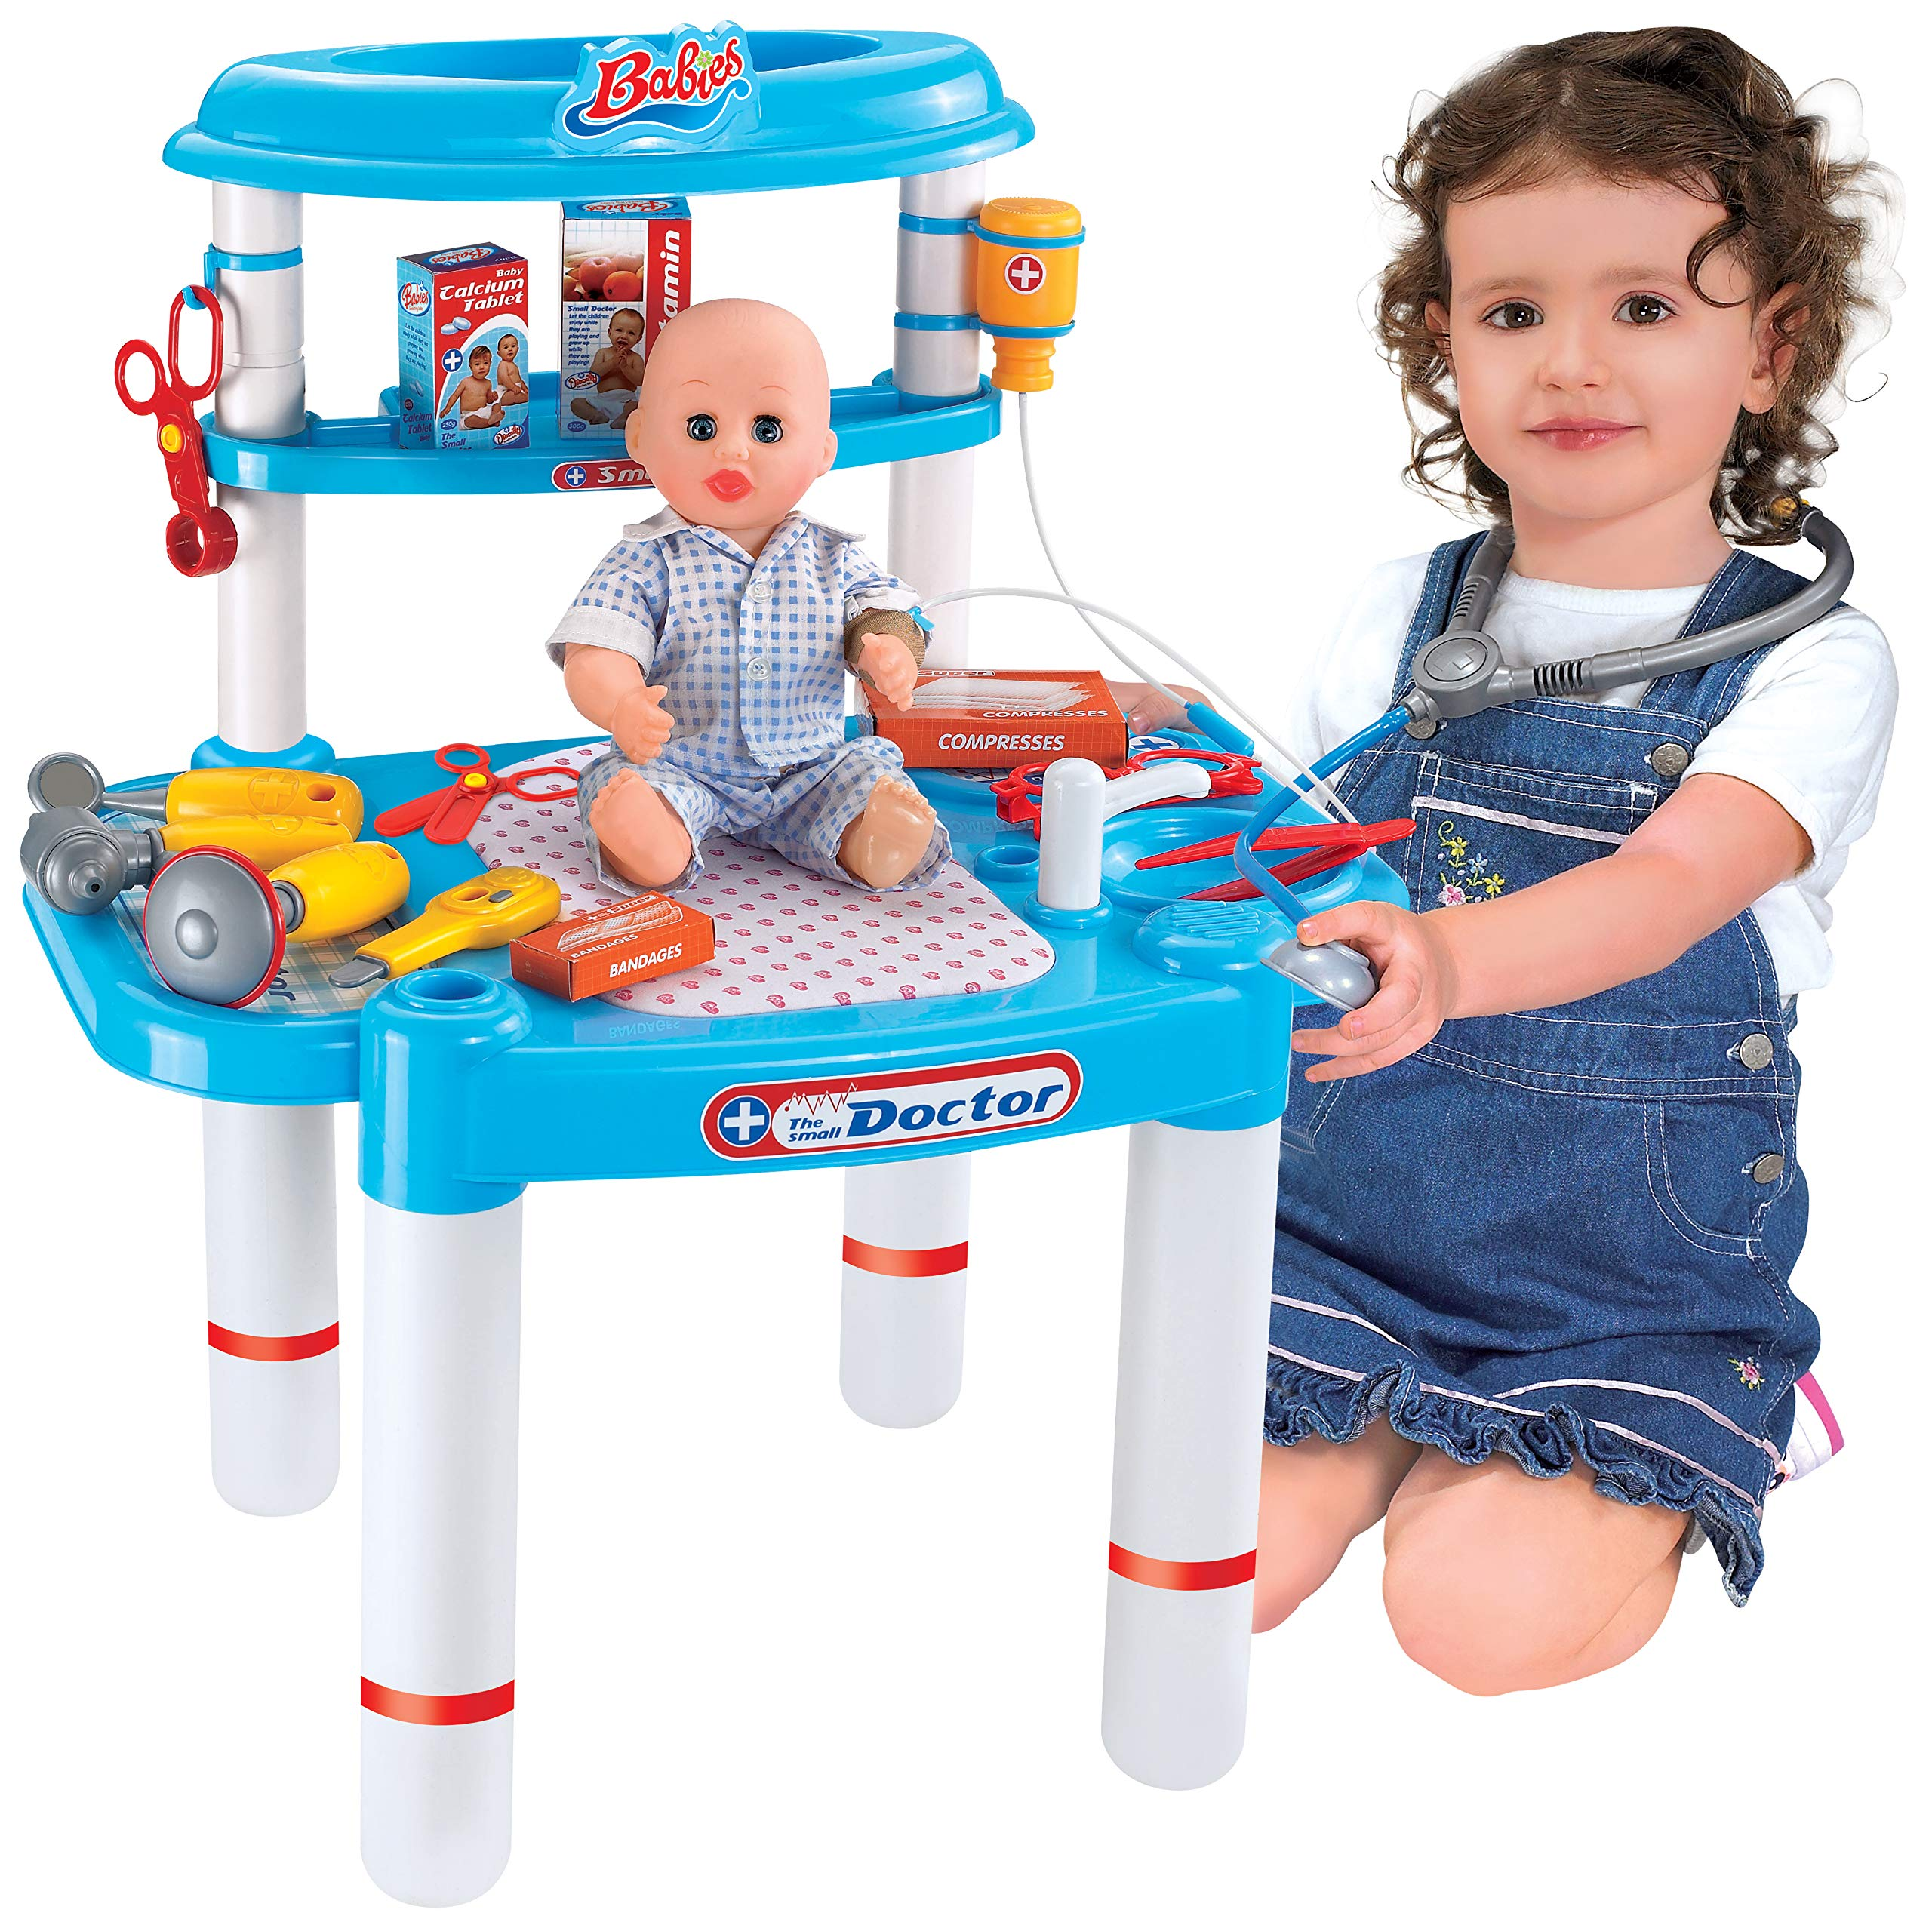 Liberty Imports Little Doctors Deluxe Hospitcal Medical Table Playset - Kids Toy Portable Doctor Set with Pretend Play Doctor Accessories